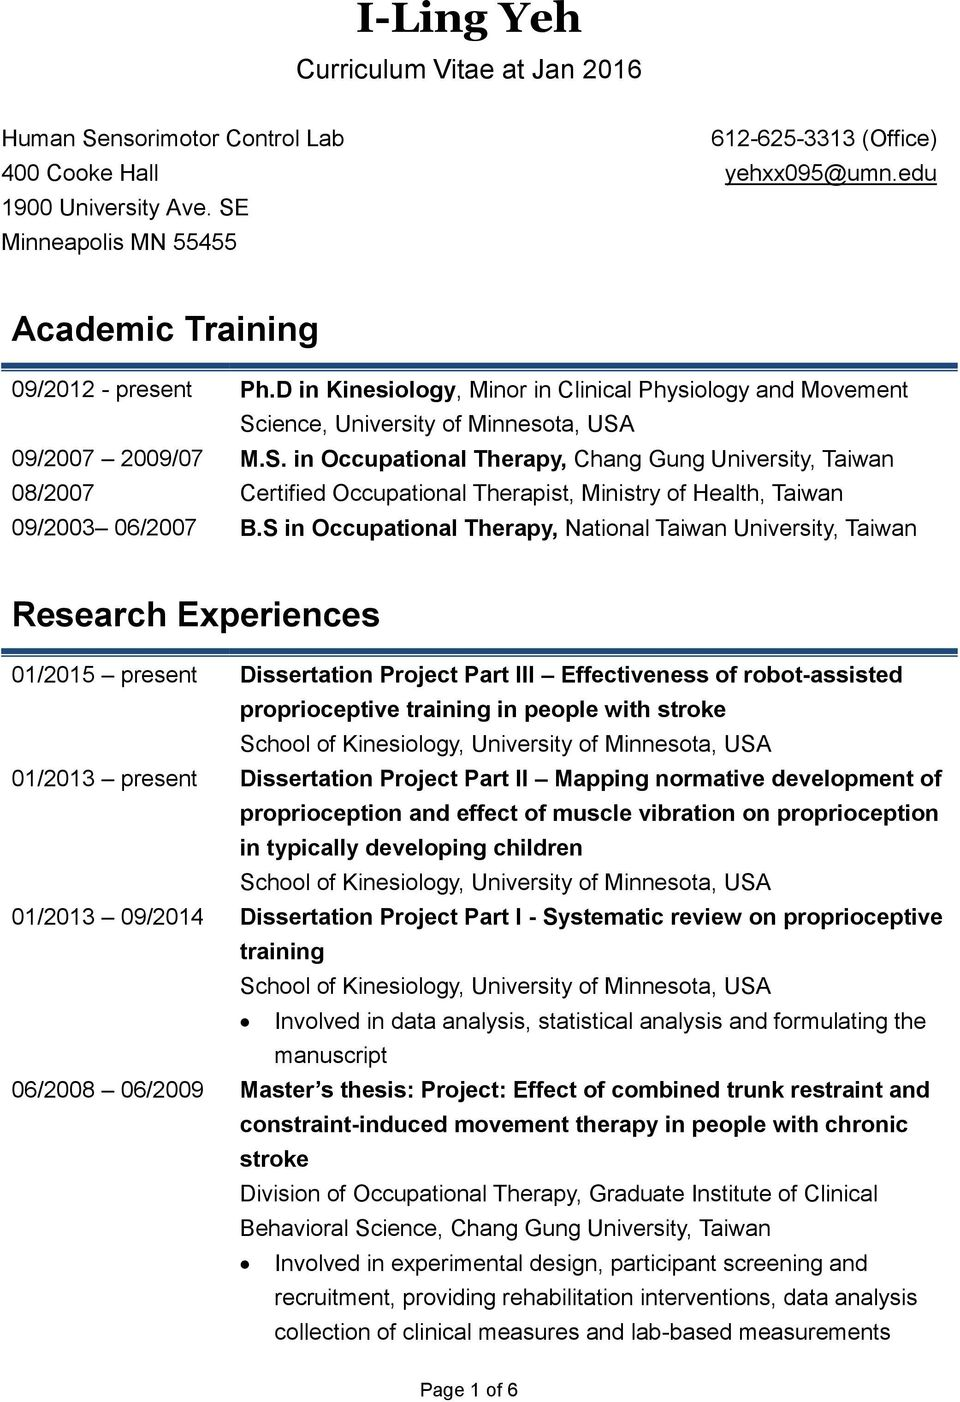 ience, University of Minnesota, USA 09/2007 2009/07 M.S. in Occupational Therapy, Chang Gung University, Taiwan 08/2007 Certified Occupational Therapist, Ministry of Health, Taiwan 09/2003 06/2007 B.